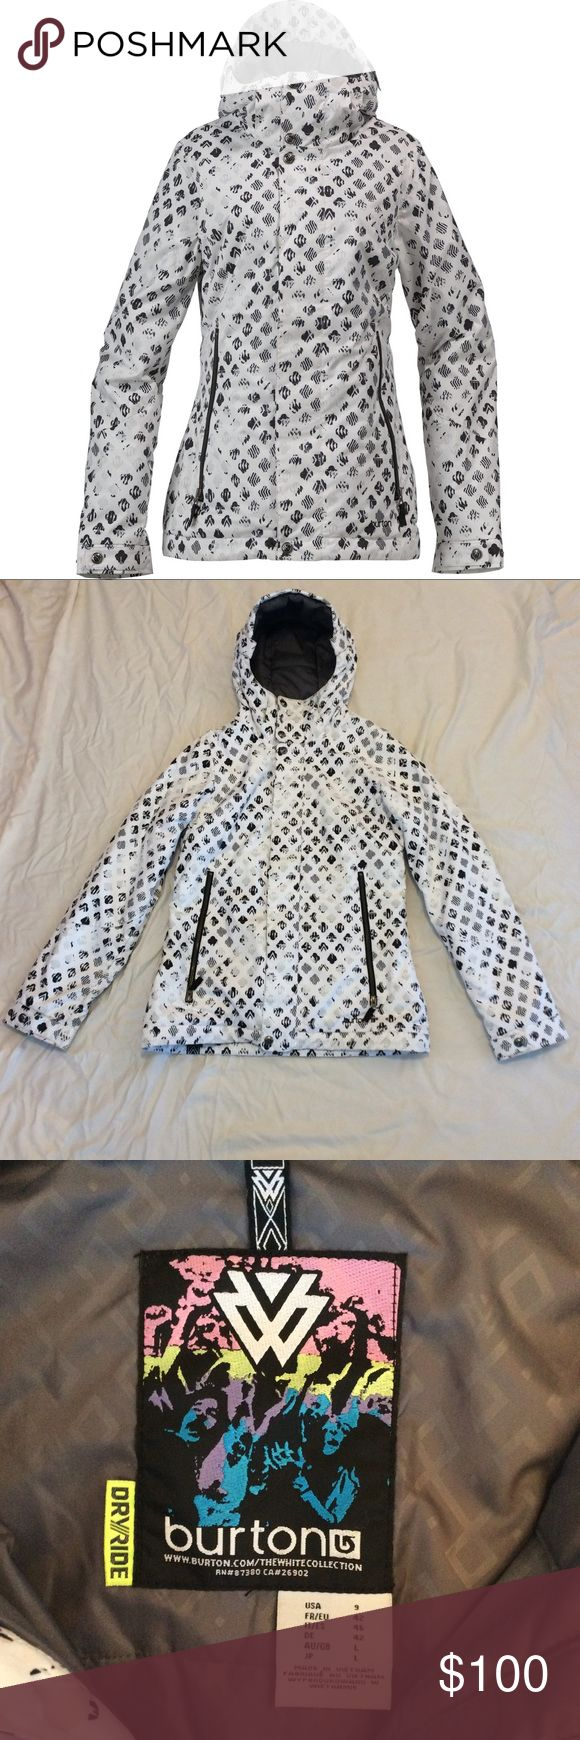 Burton women snowboard jacket -Baby Cakes Jacket Details/specs: https://www.evo.com/outlet/insulated-jackets/burton-the-white-collection-baby-cakes-jacket-womens  Women's Size 9. Worn once on ski trip. In excellent condition  Thermacore™ (60g body/ 40g sleeves) insulation is low bulk, known for its ability to create heat without limiting mobility. Embossed Taffeta lining offers crisp, high-end feel that wicks and breathes easy to keep you dry from the inside out  Burton's Slim Fit is just a…